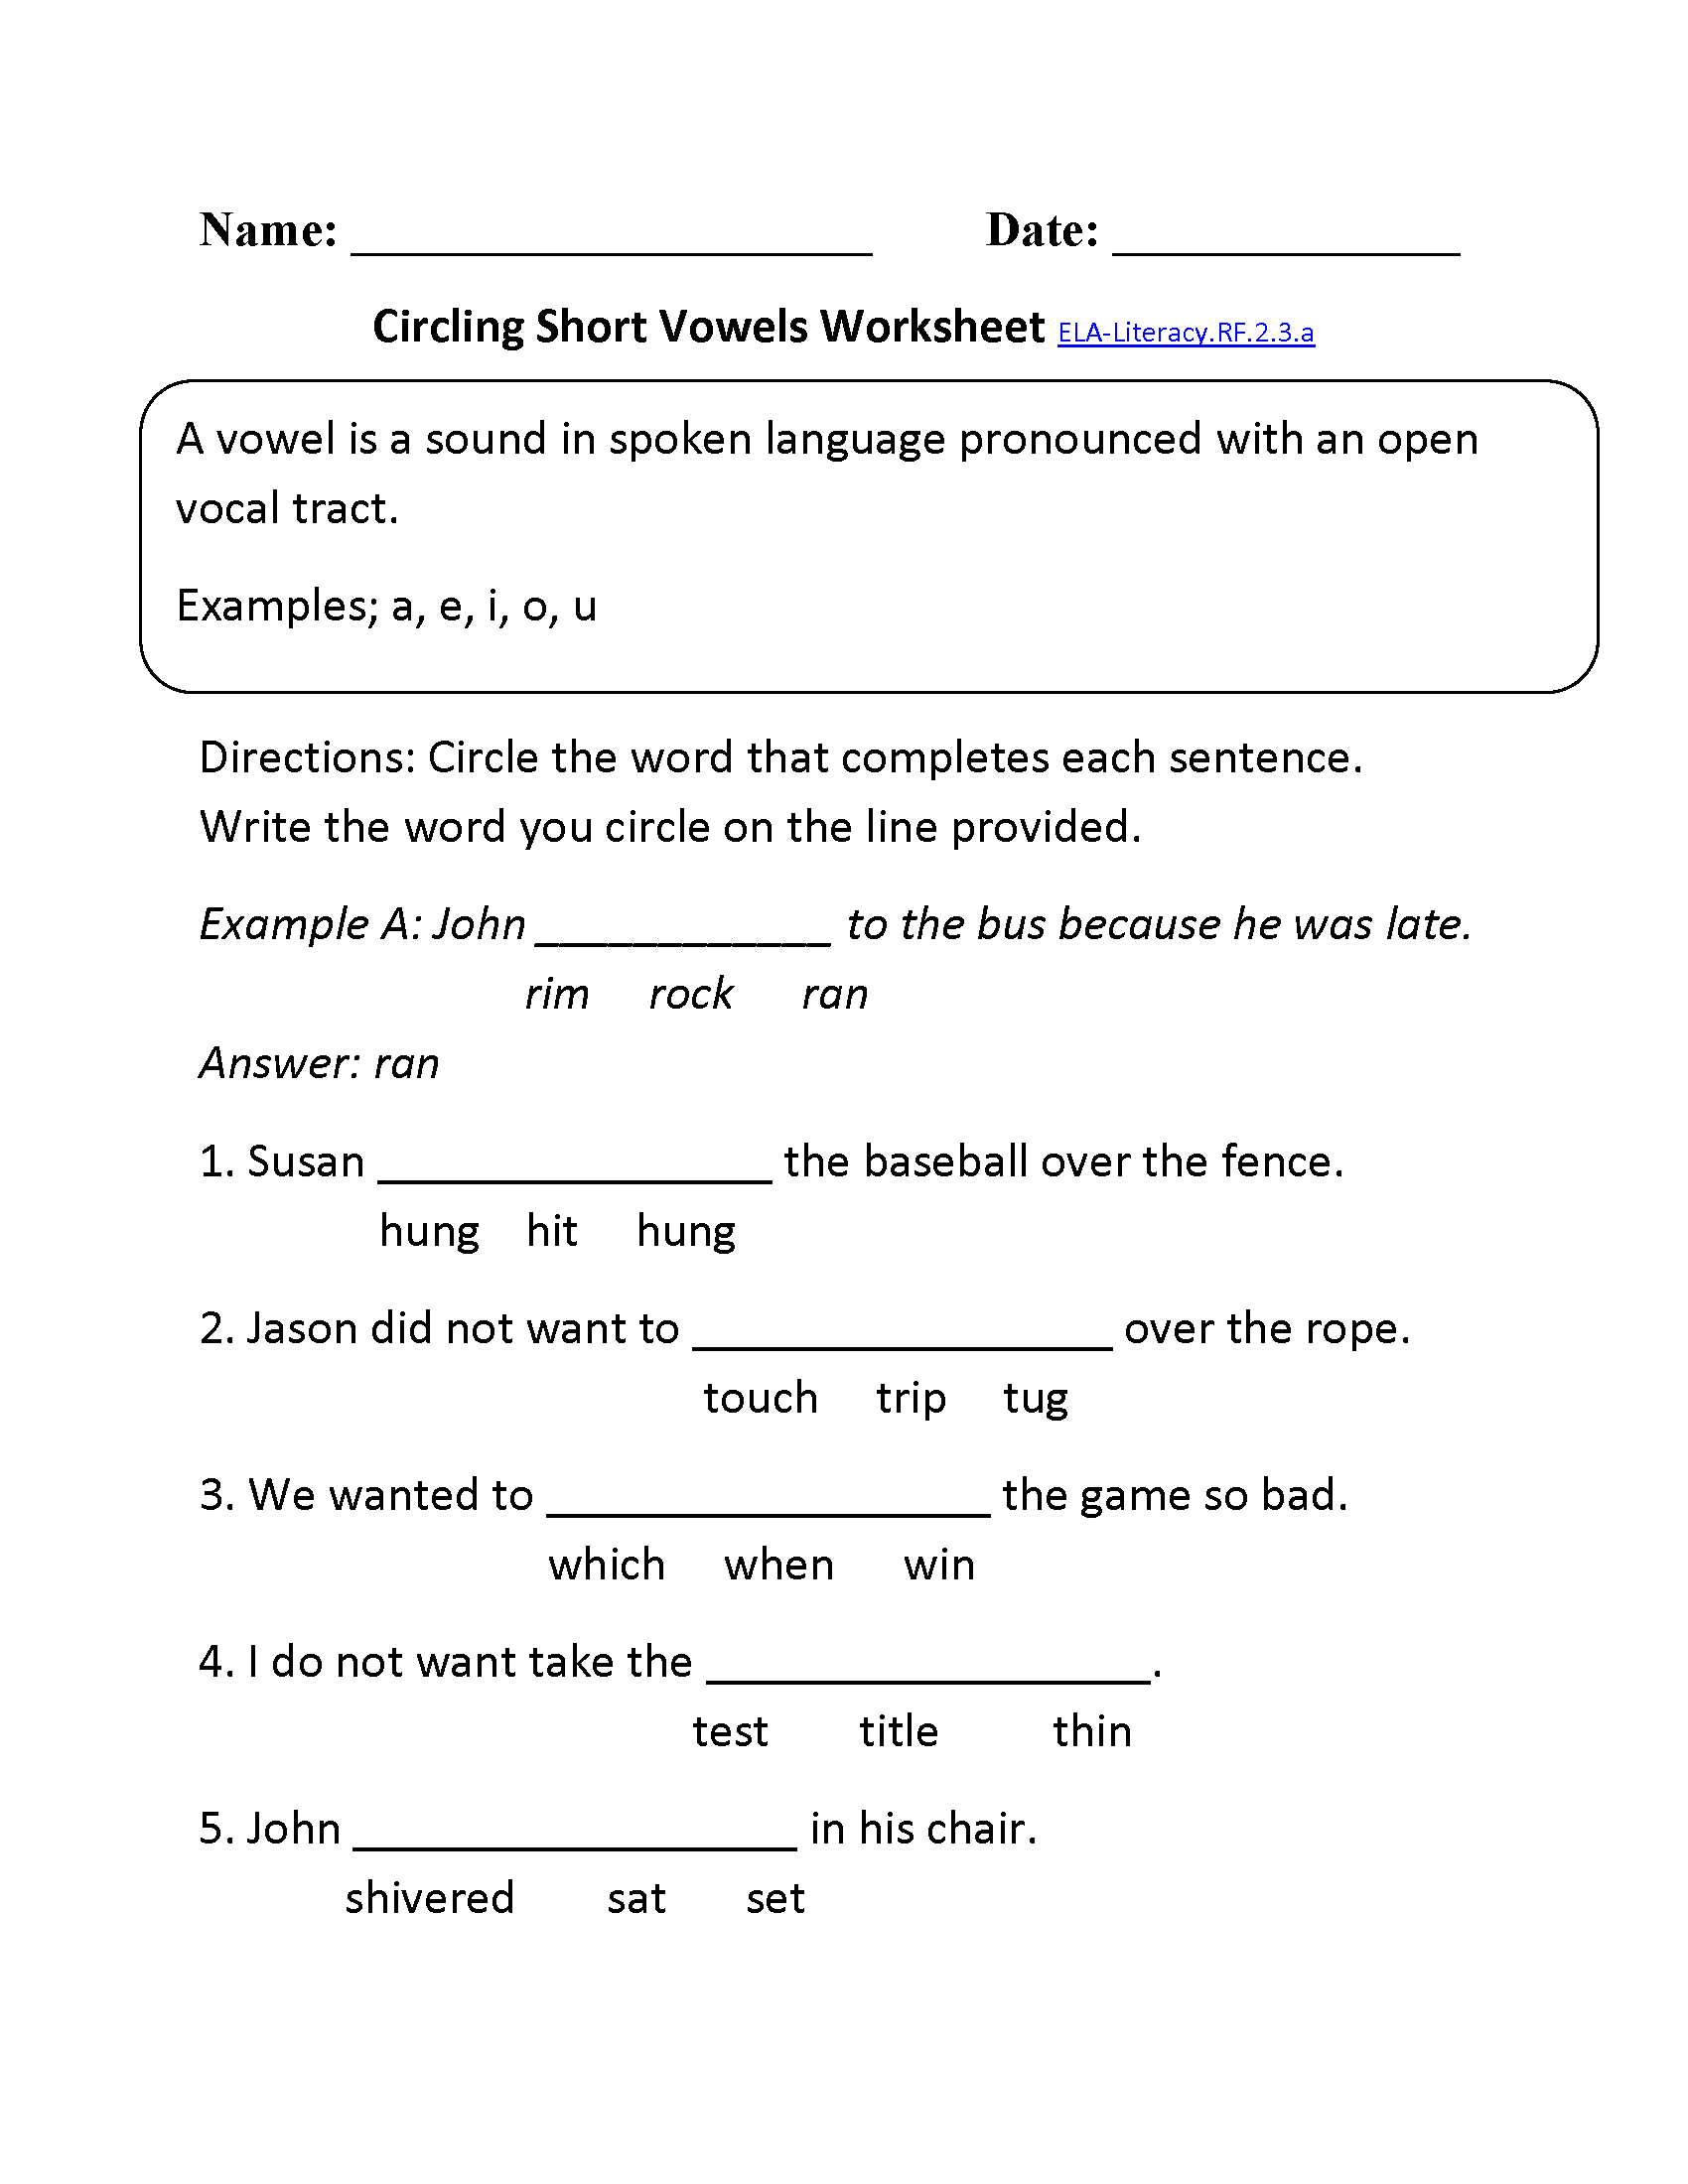 Free Worksheet 2nd Grade Phonics Worksheets 2nd grade common core reading foundational skills worksheets short vowels ela literacy rf 2 3 a skills